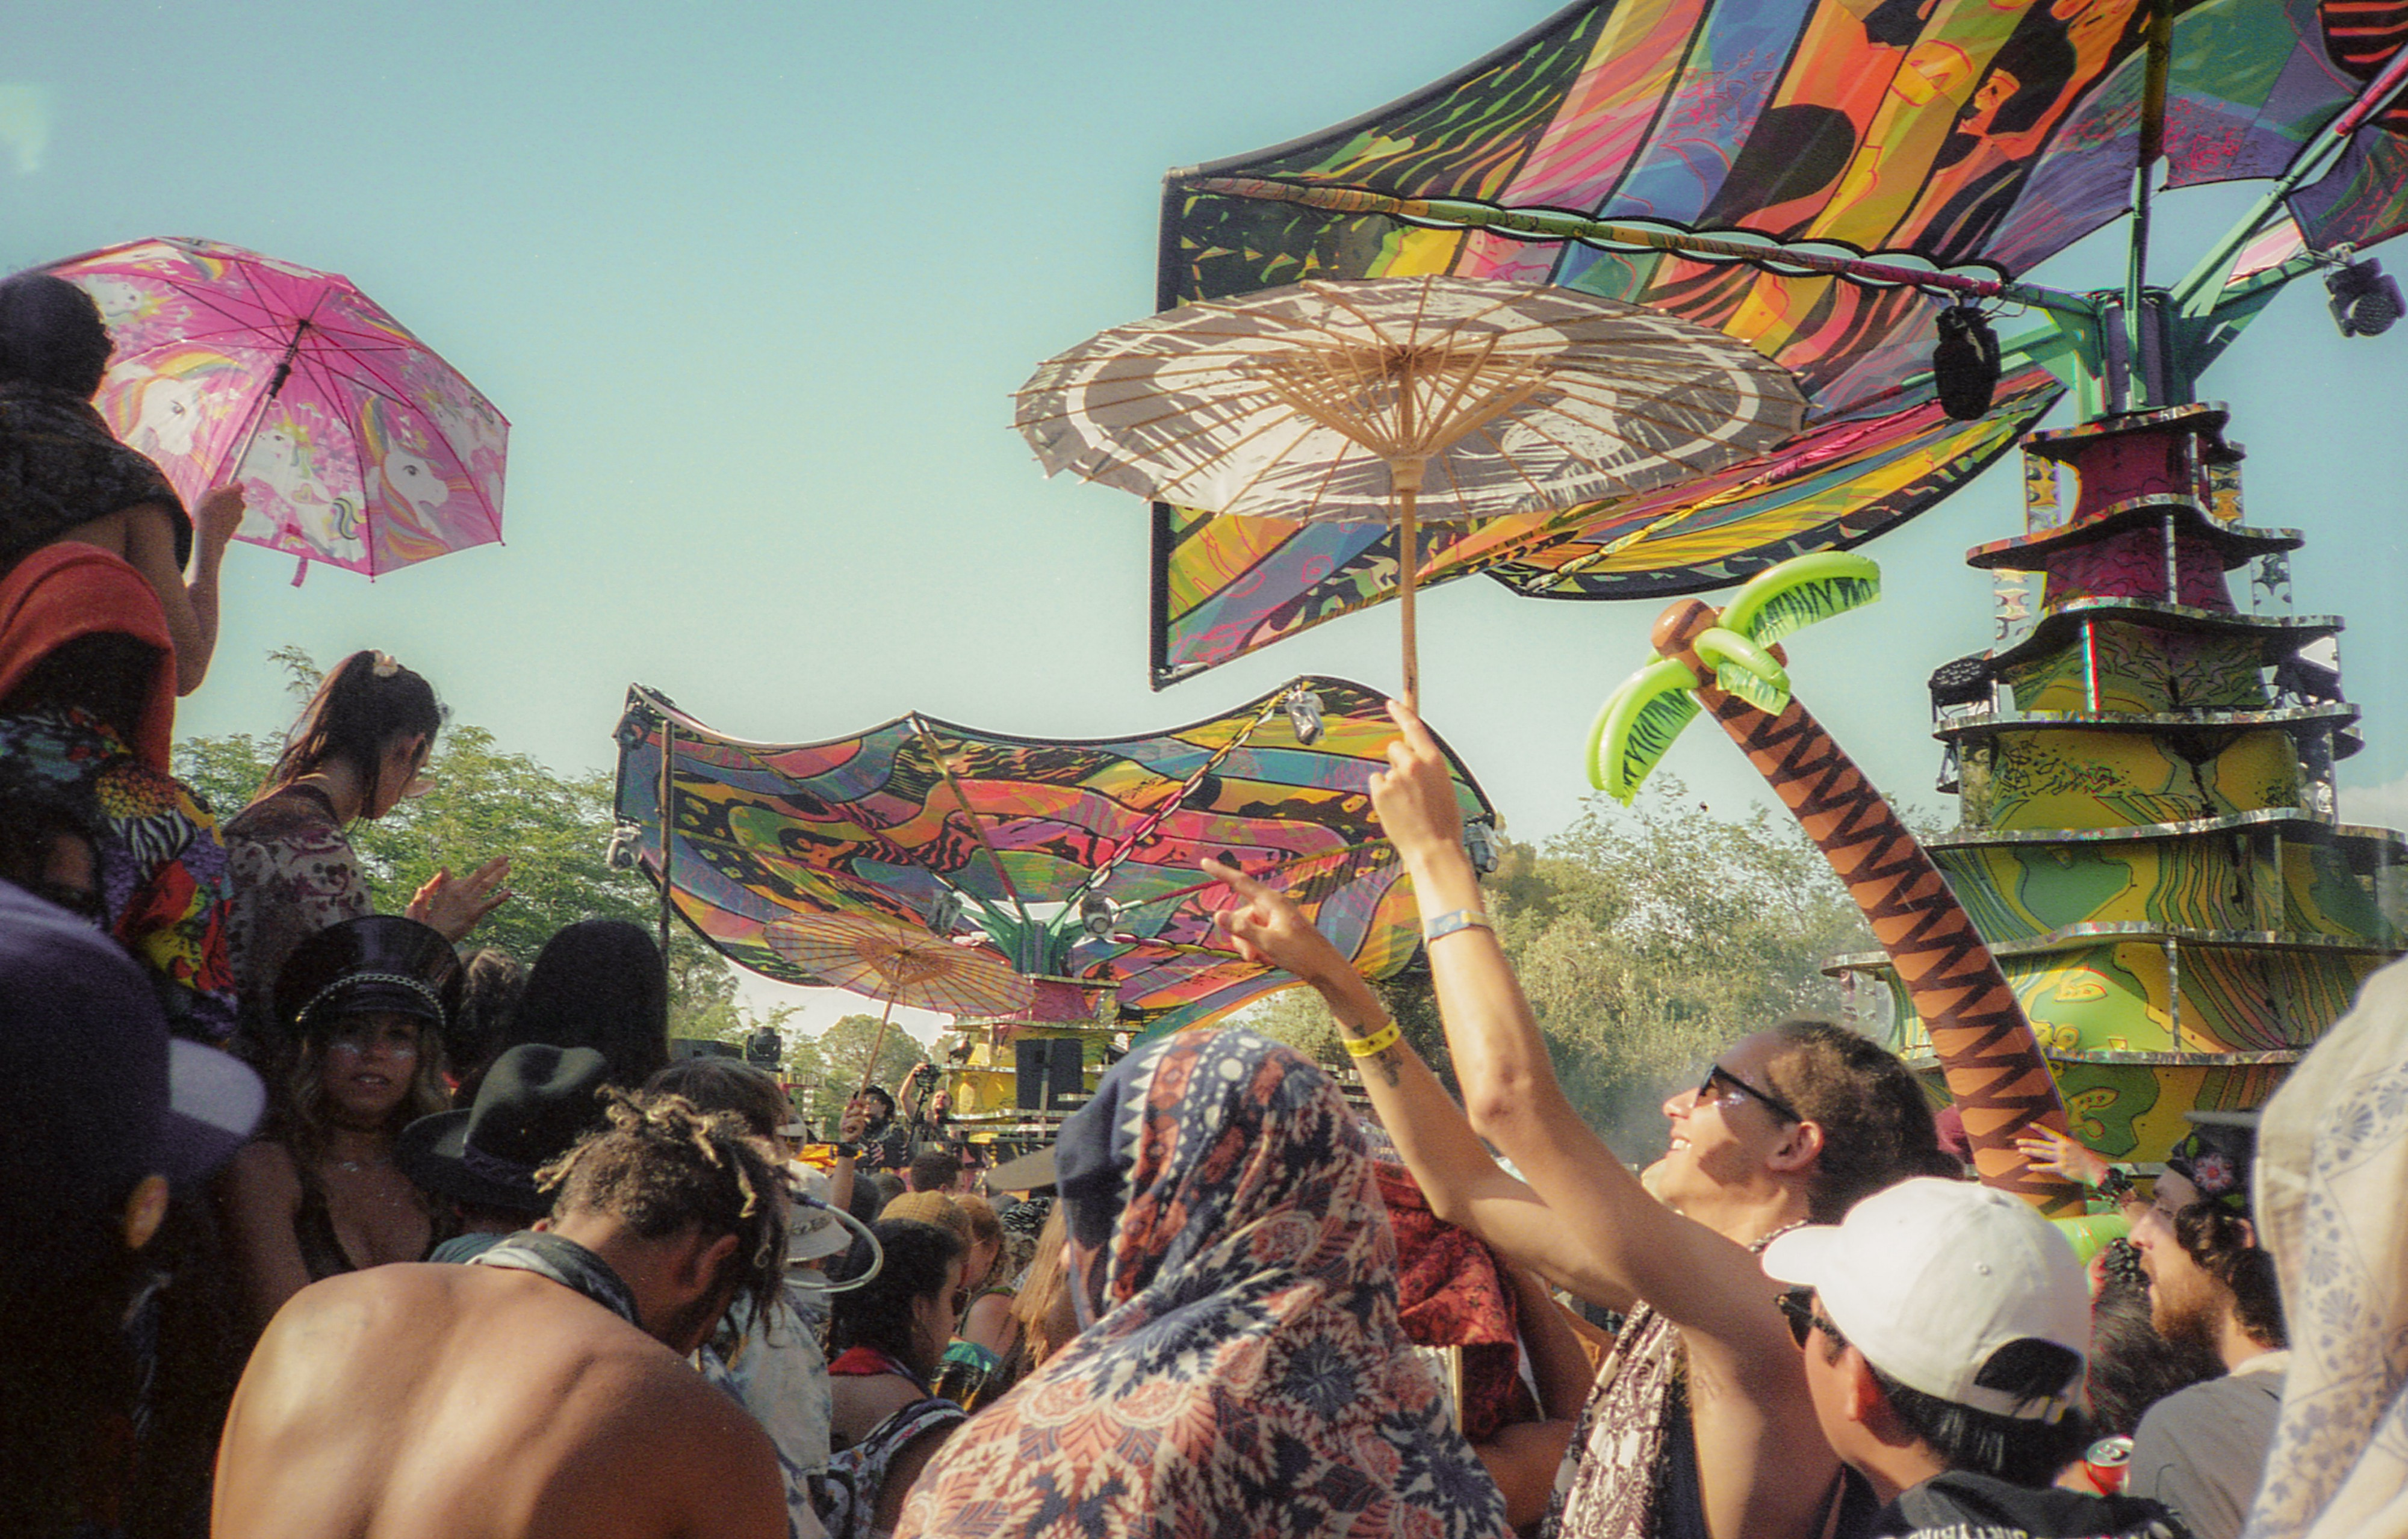 A colorful shot of a crowd dancing at a music festival